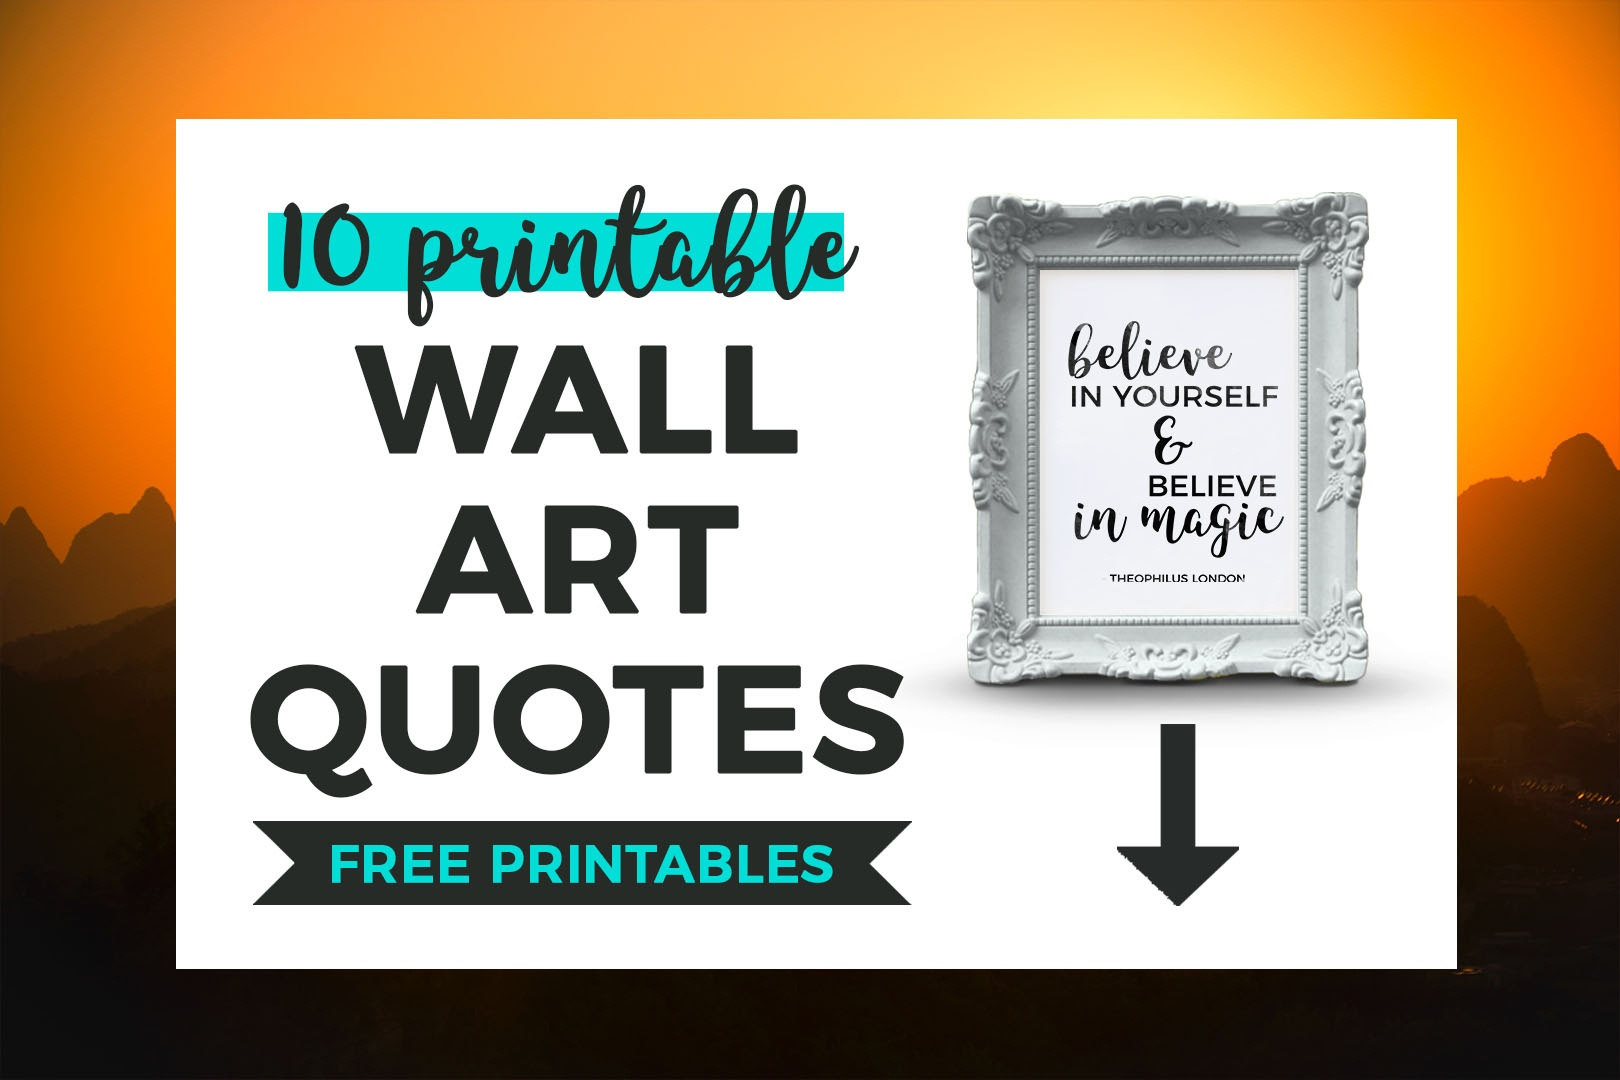 10 Printable Black And White Quotes That Inspire | It's All You Boo - Free Printable Wall Art Quotes